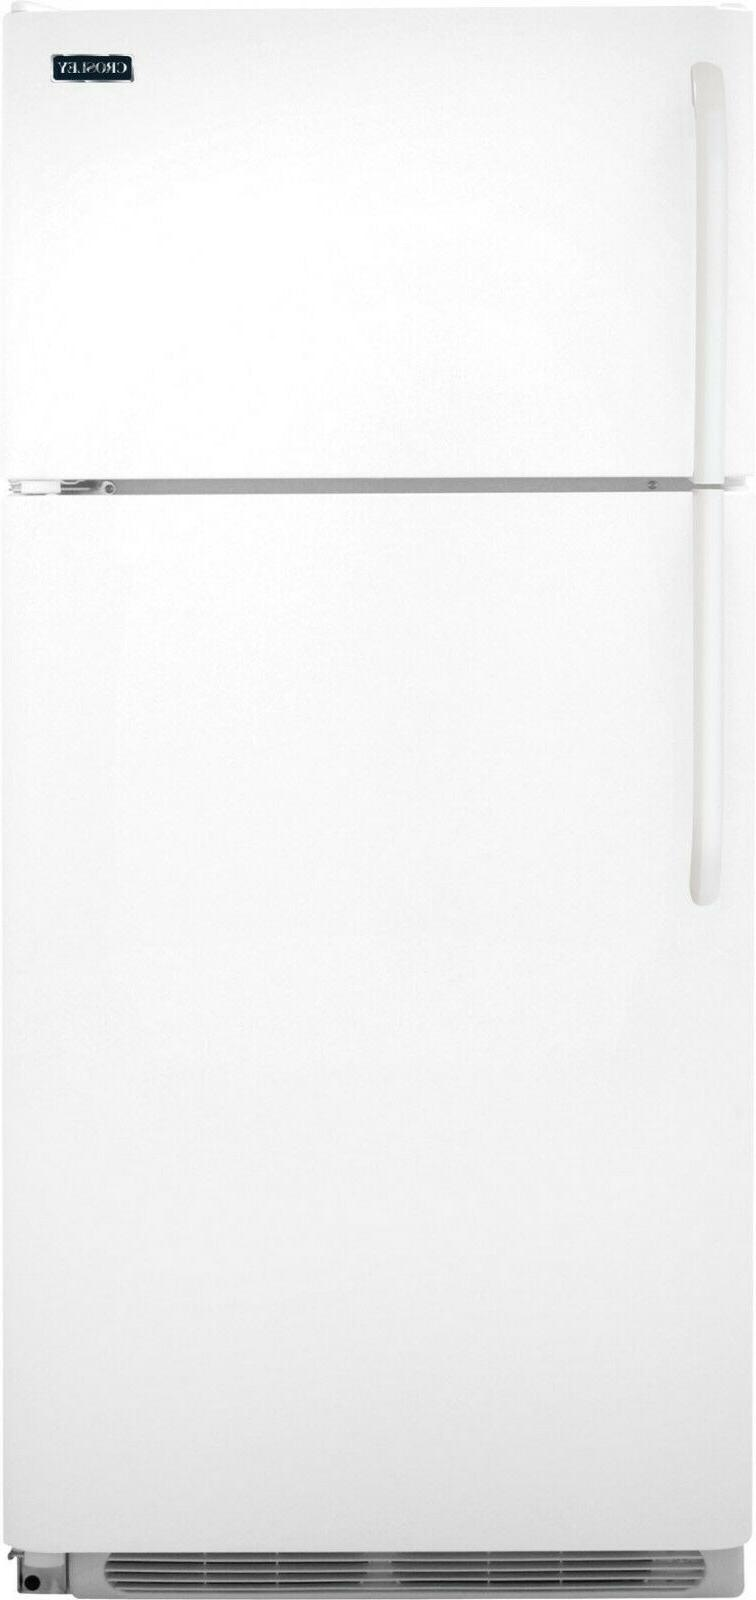 21 cu ft top mount refrigerator